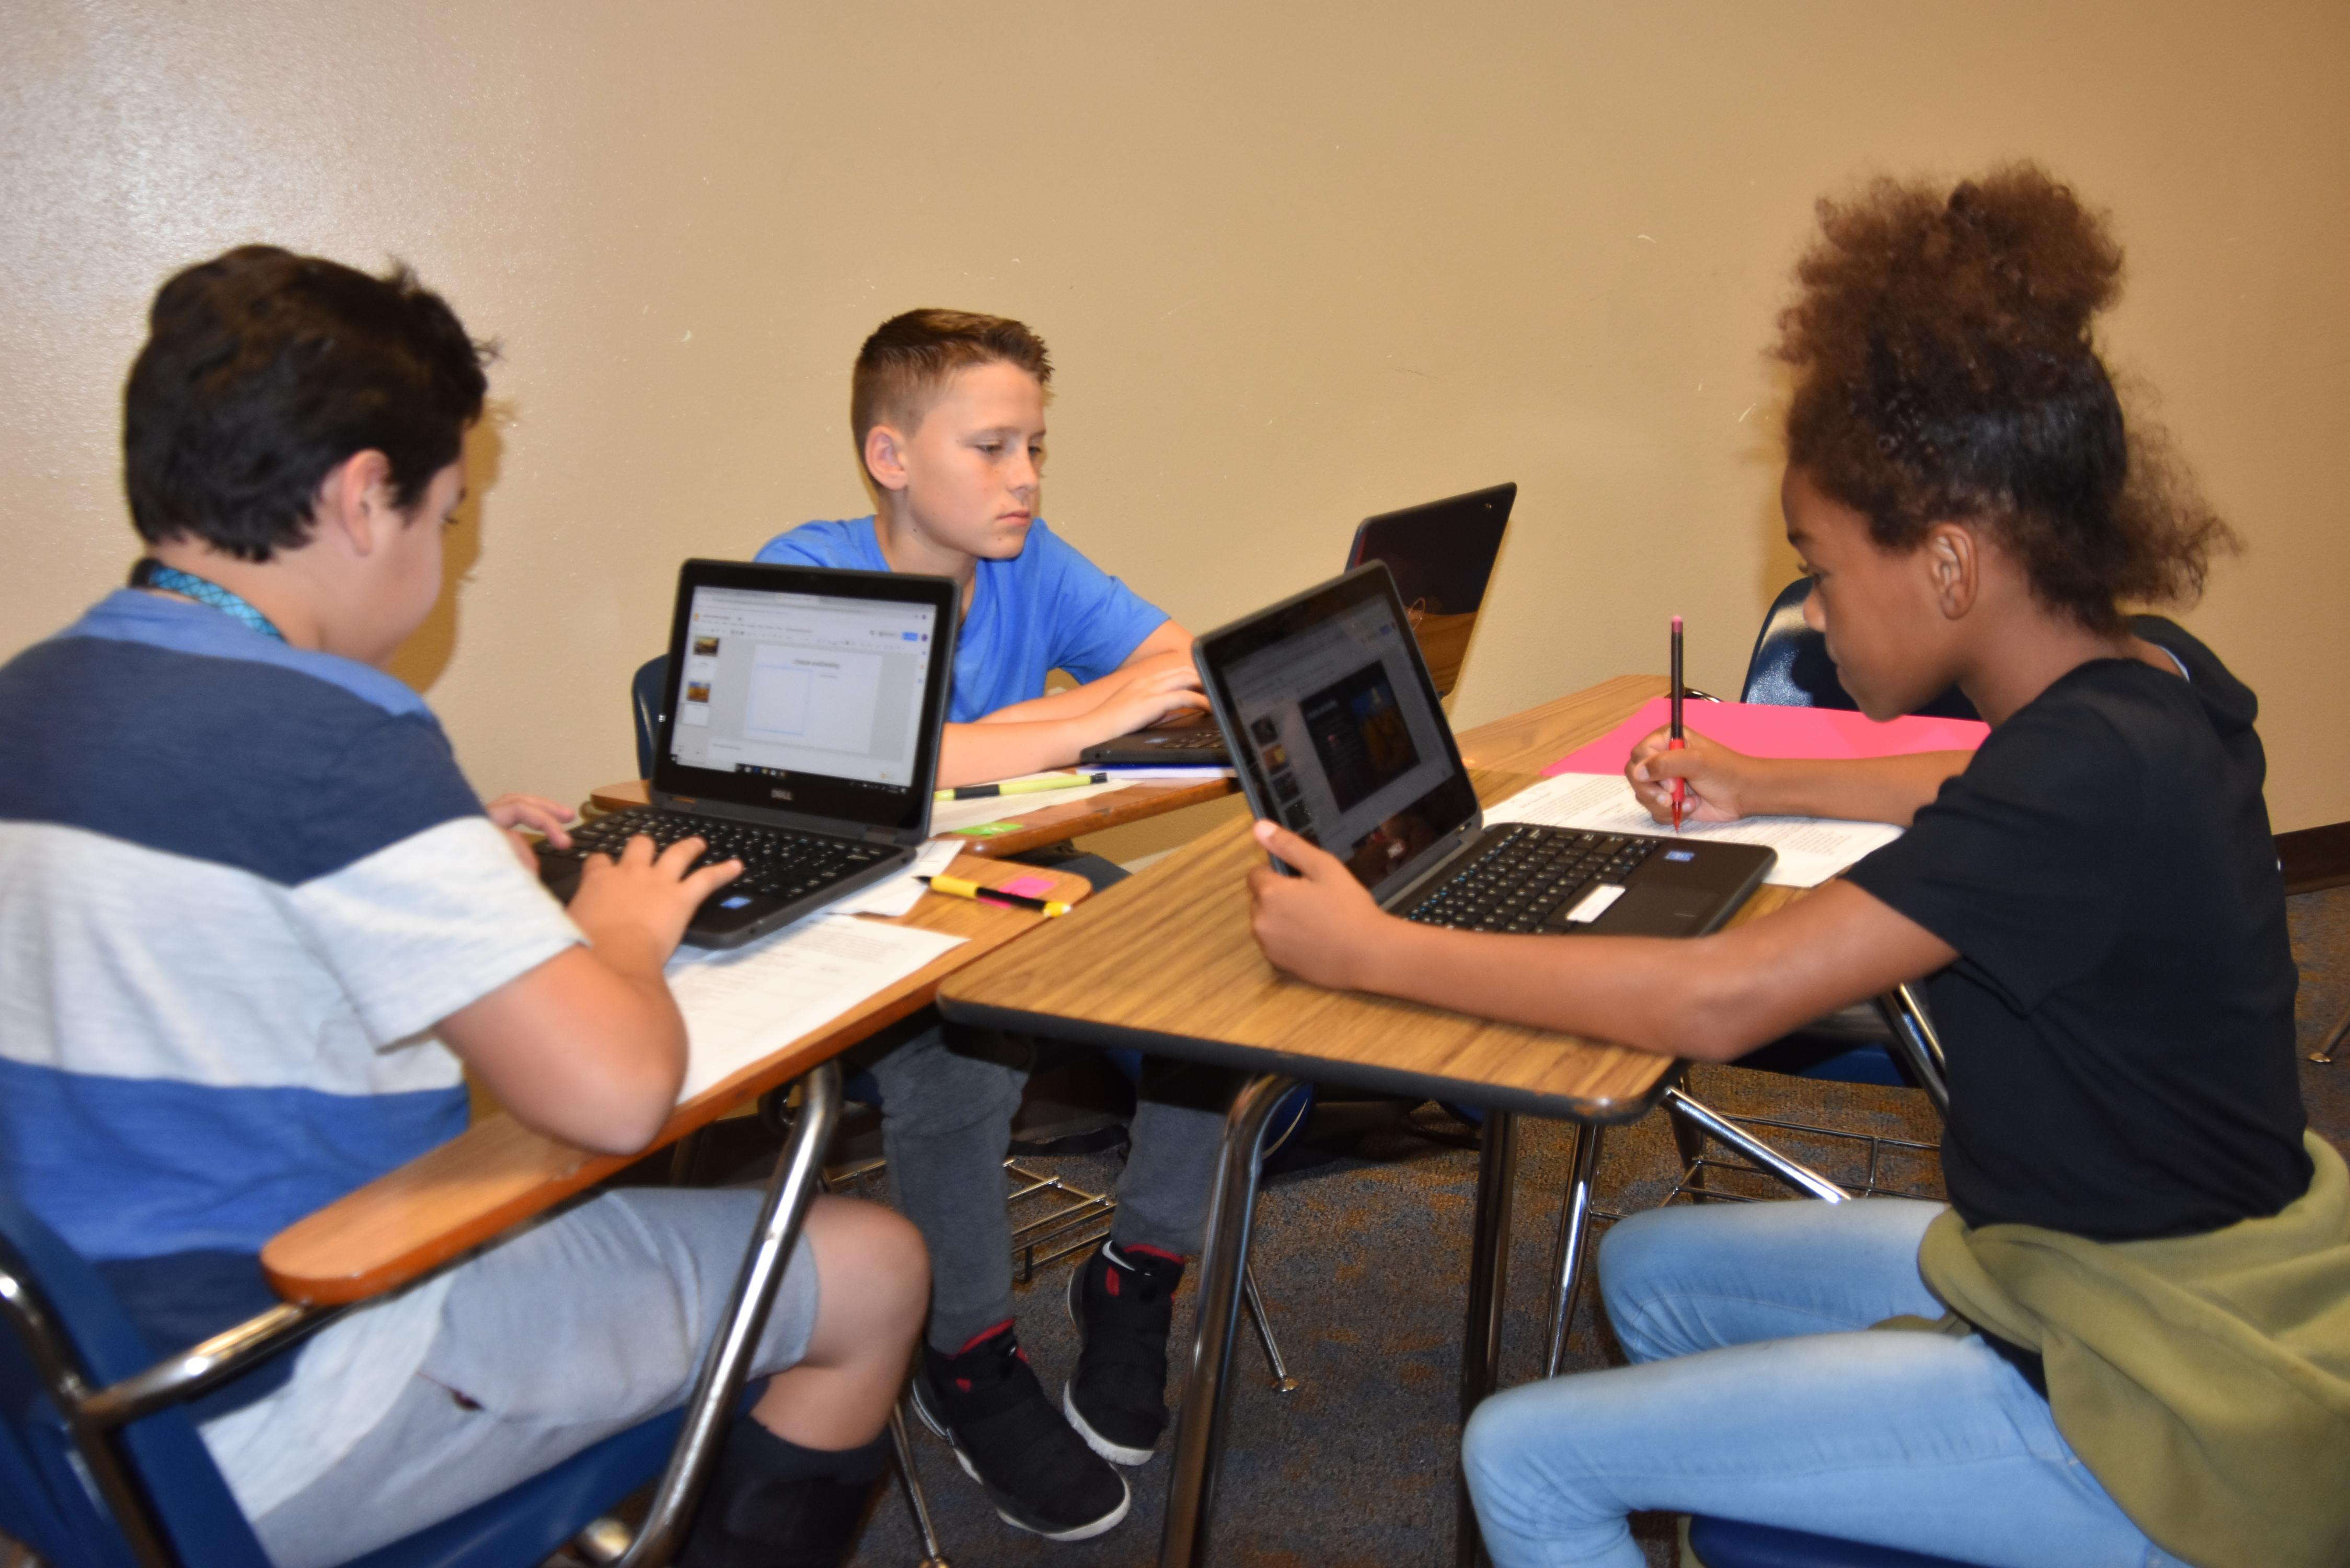 Brewer Middle School students use Dell laptops at school and at home to enhance learning.